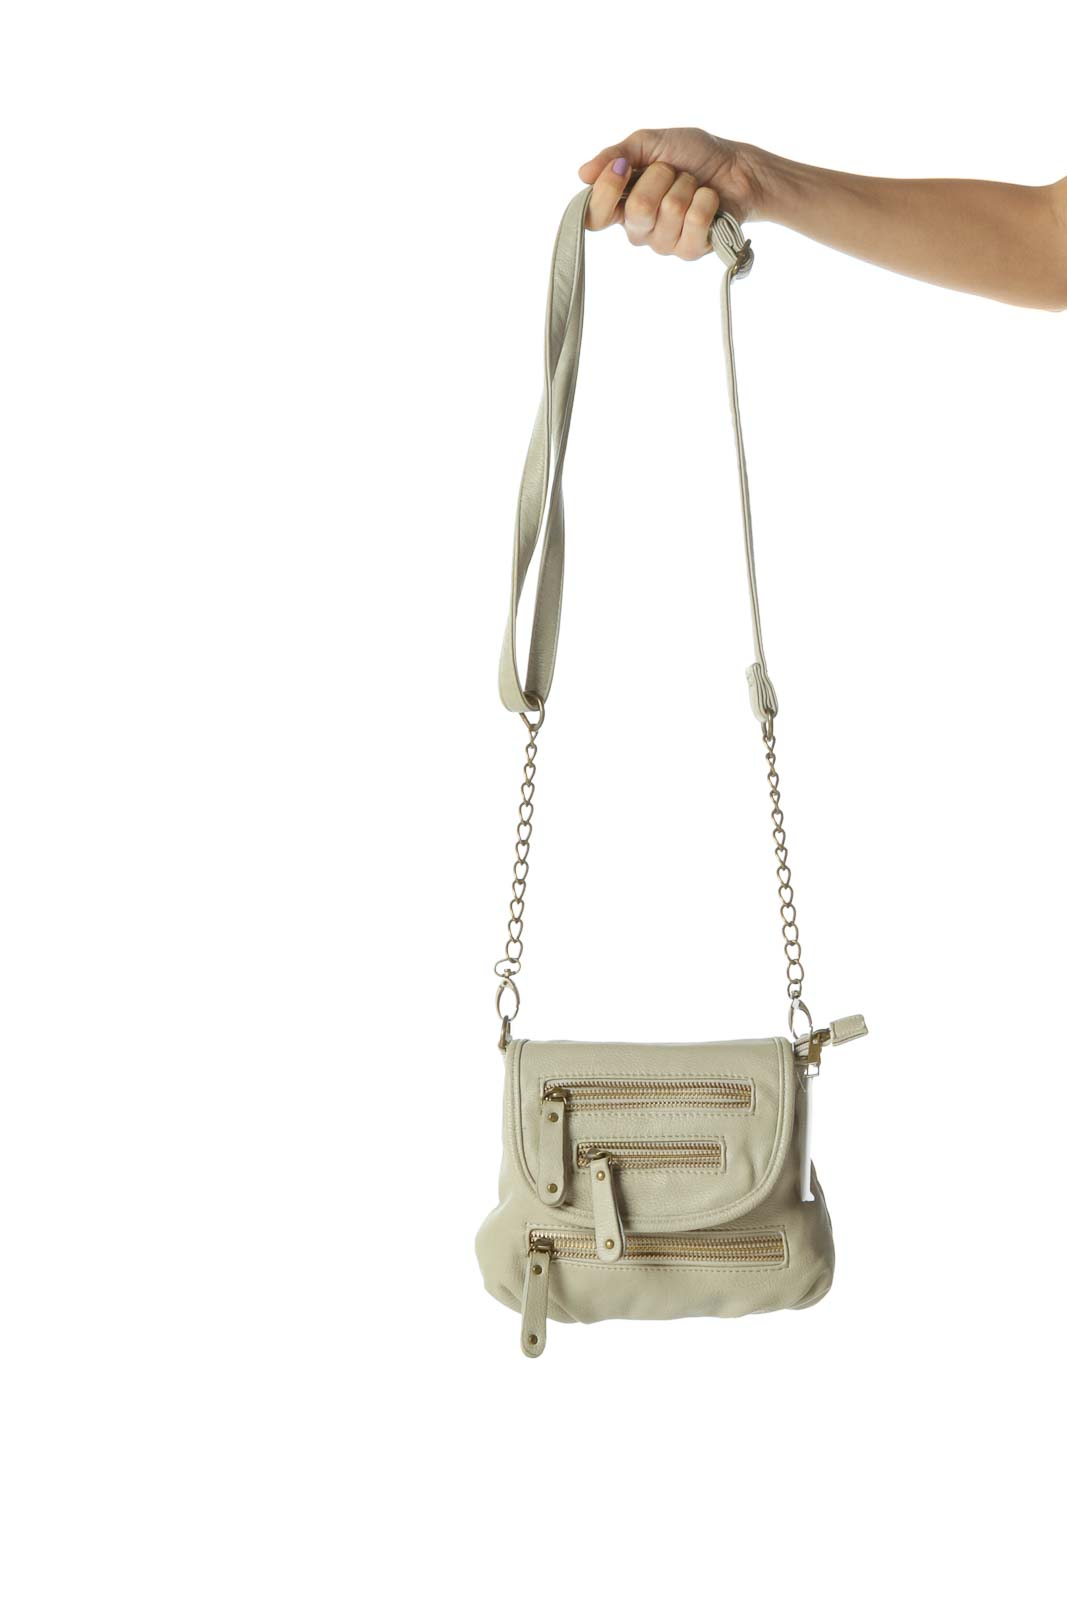 Cream Zippered Crossbody Bag with Removable Chain Strap Front